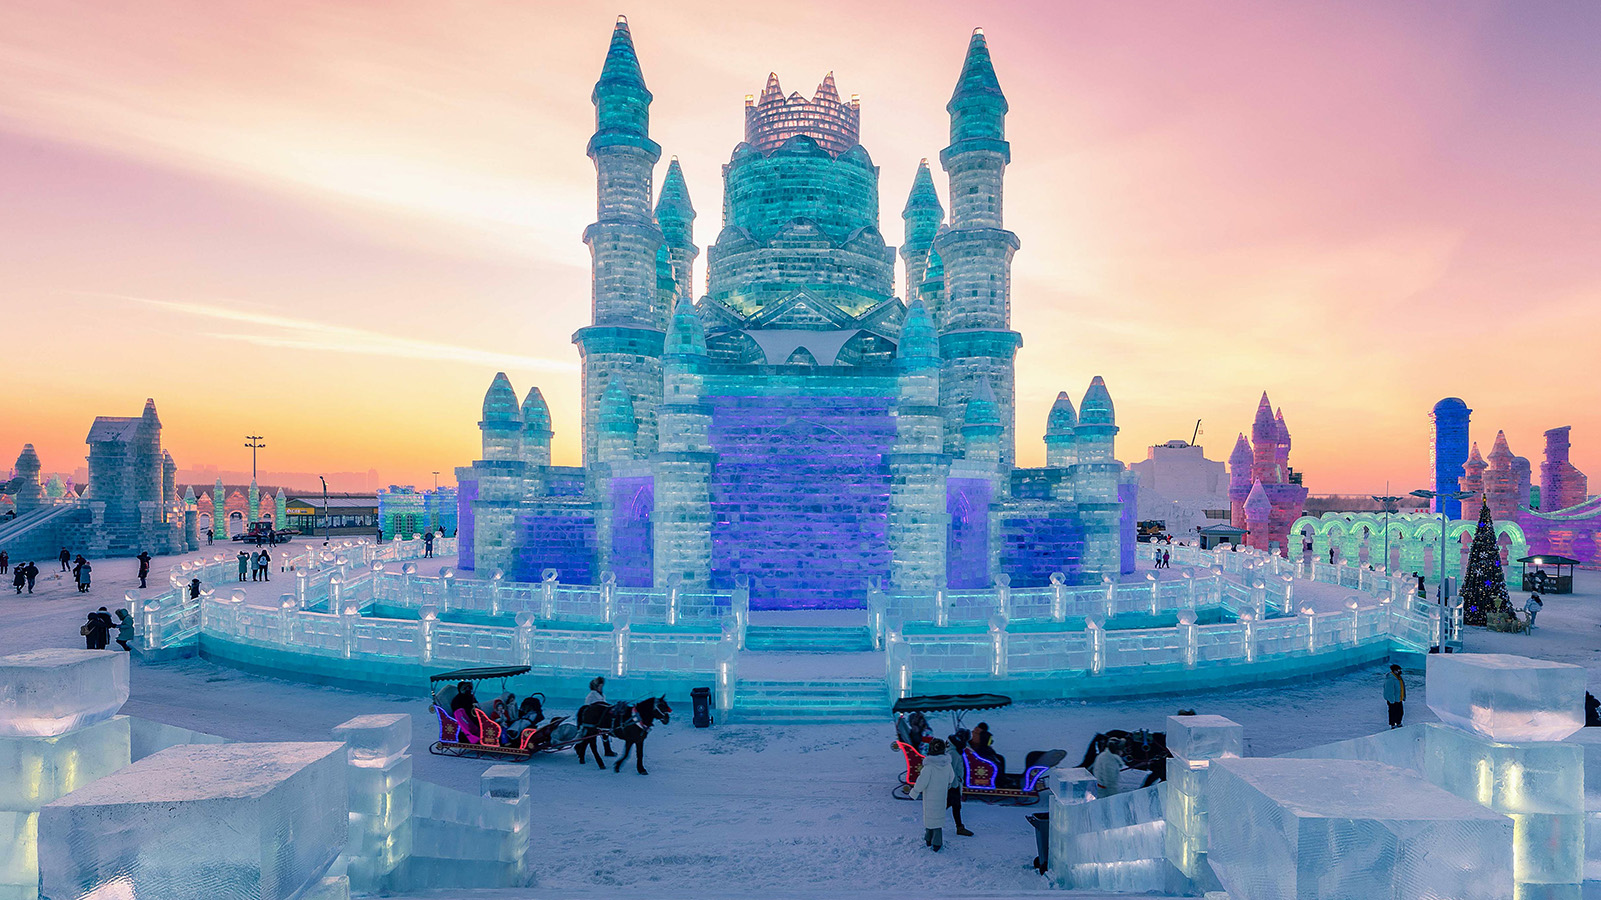 Google News - Harbin International Ice and Snow Sculpture Festival - Latest